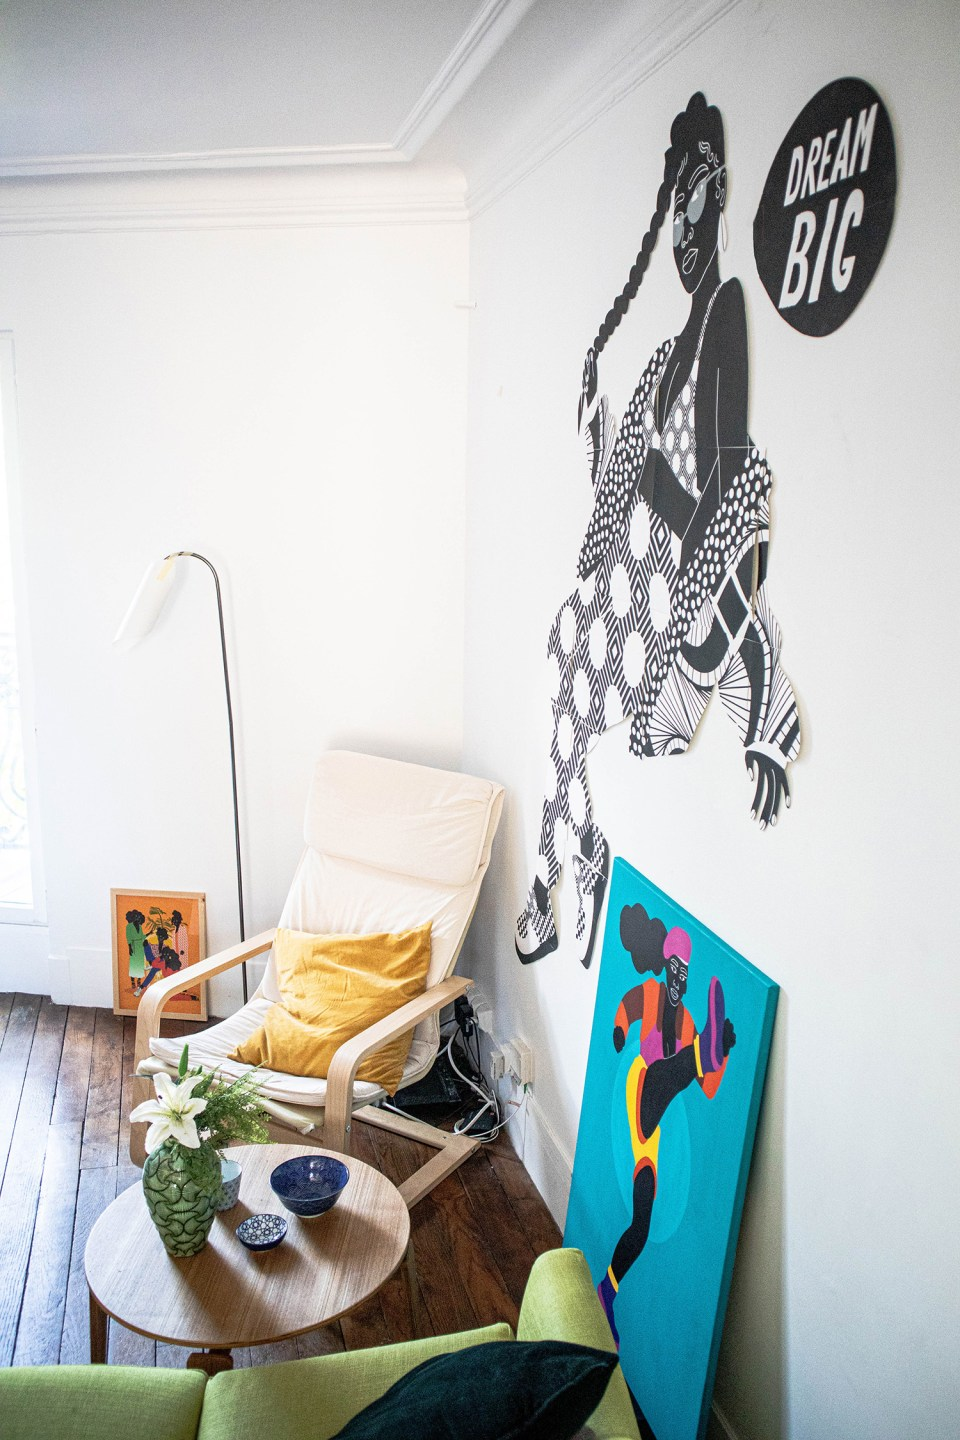 seating area with IKEA chairs